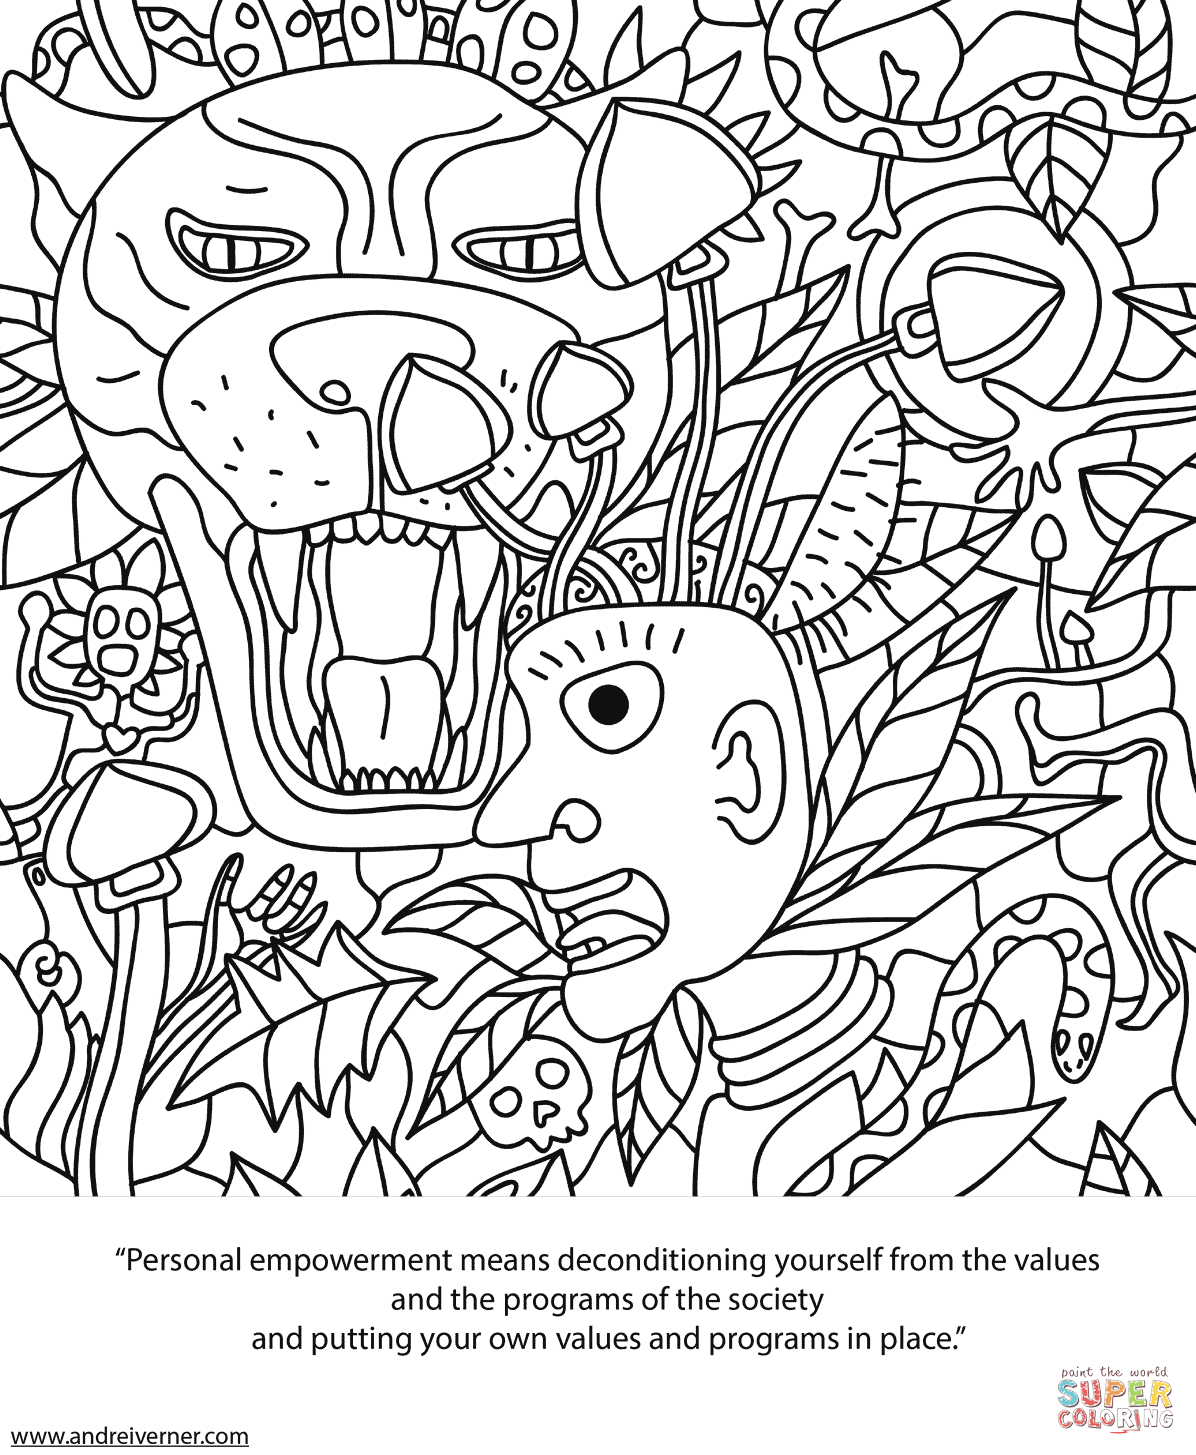 trippy coloring sheets coloring pages trippy for educations coloring pages coloring sheets trippy